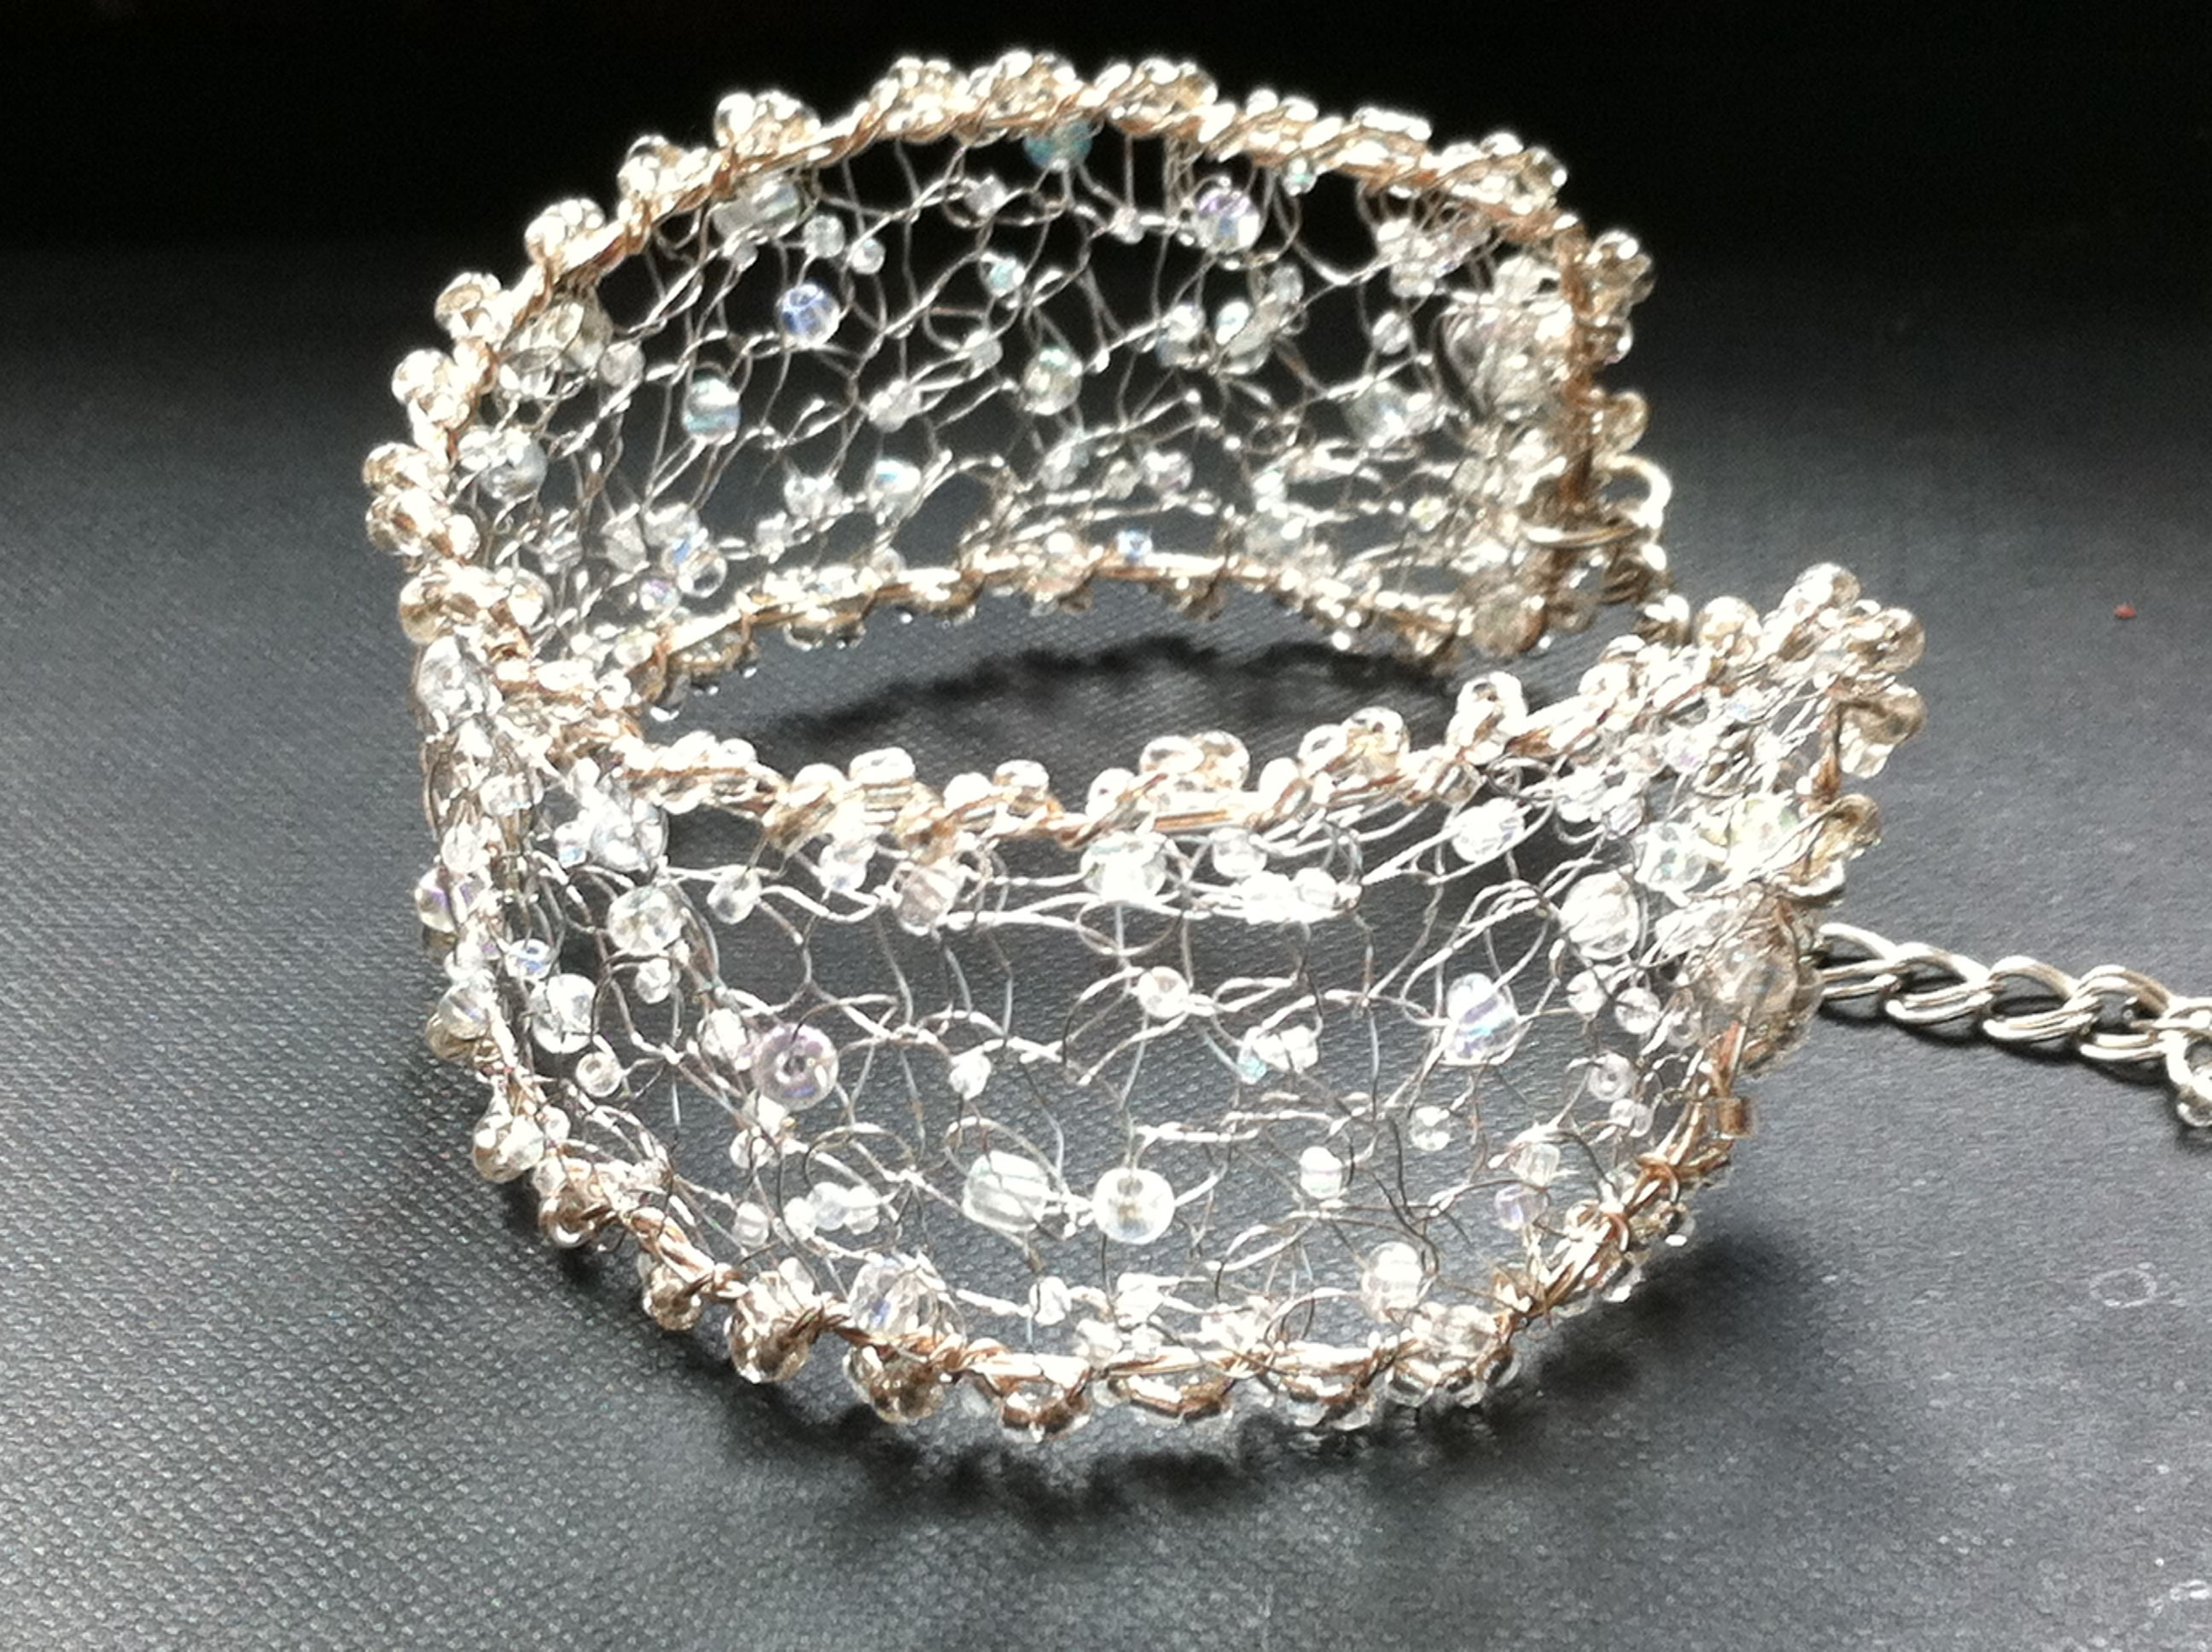 Crochet Wire : crochet wire bracelet DIY jewelry Pinterest